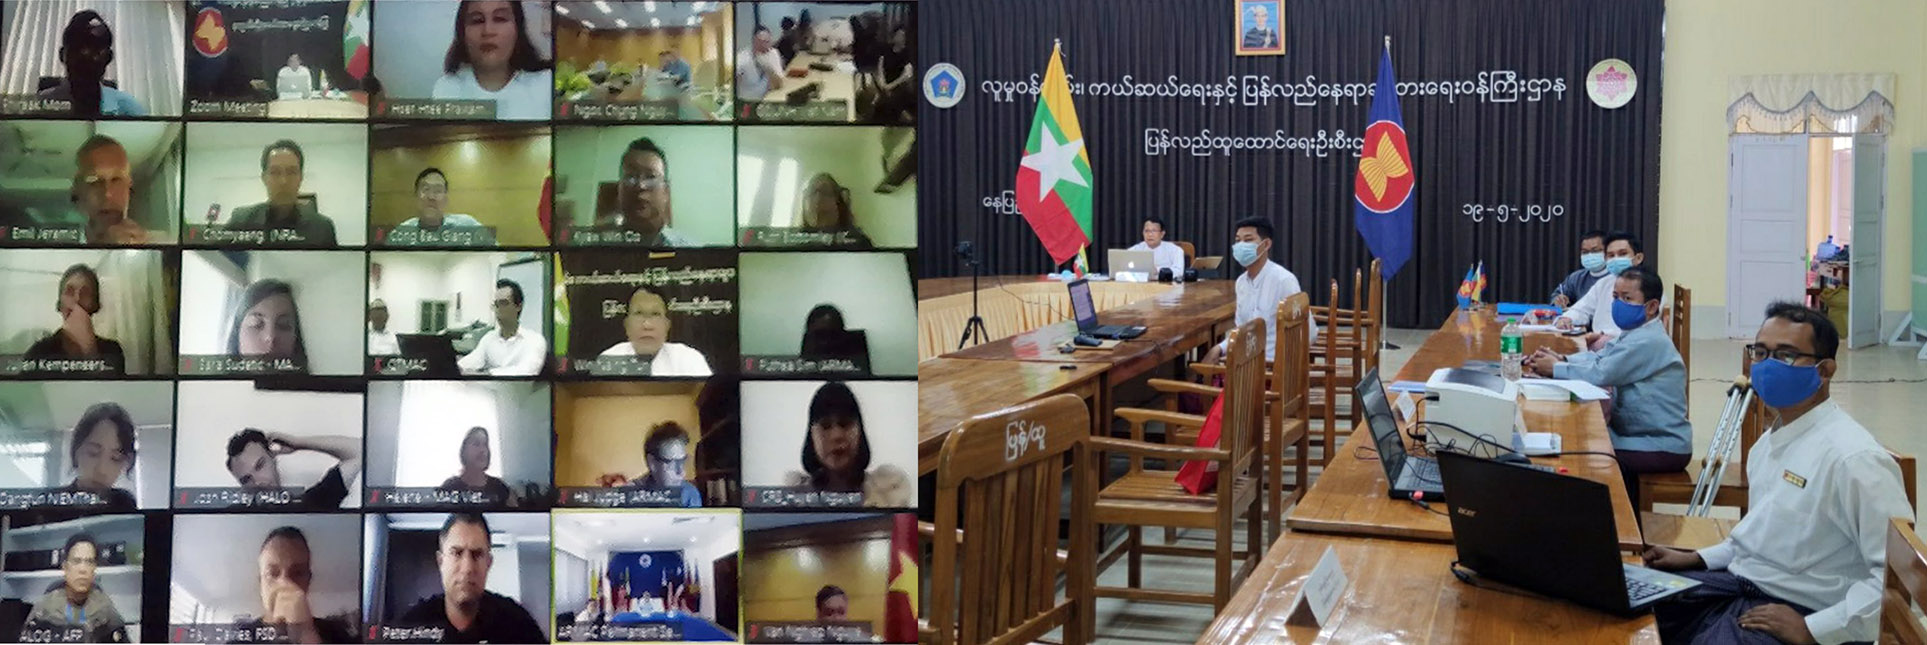 """The ARMAC holds Regional Webinar on """"Explosive Ordnance Risk Education in ASEAN in a Time of Pandemic"""" on 19 May afternoon. PHOTO: MNA"""